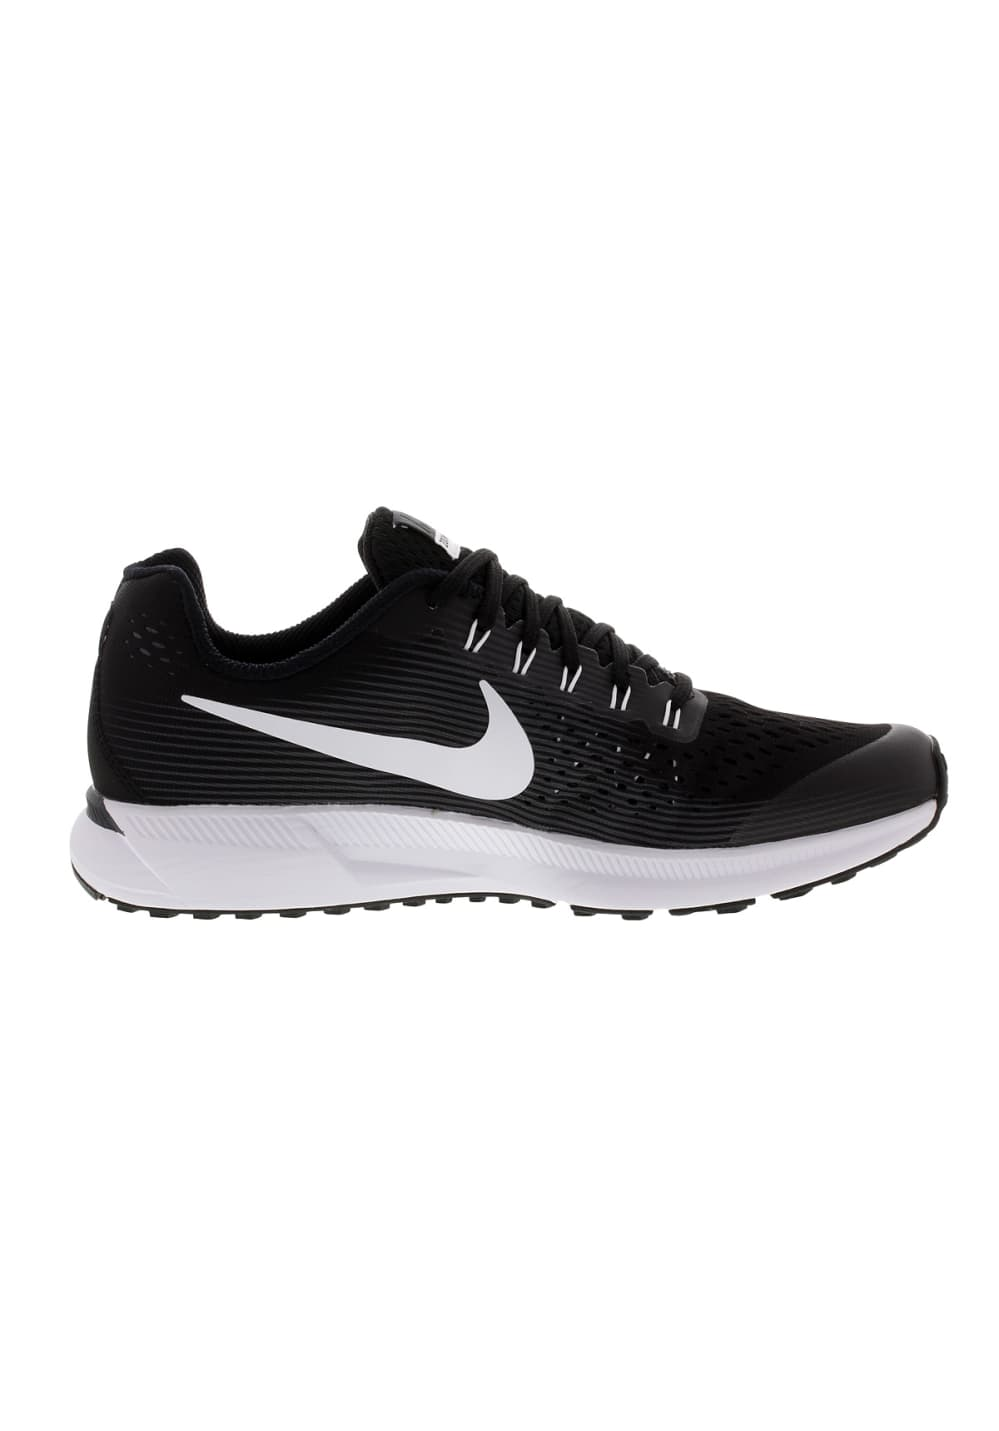 53e3aaffe8db Next. -60%. This product is currently out of stock. Nike. Zoom Pegasus 34  GS Boys - Running shoes